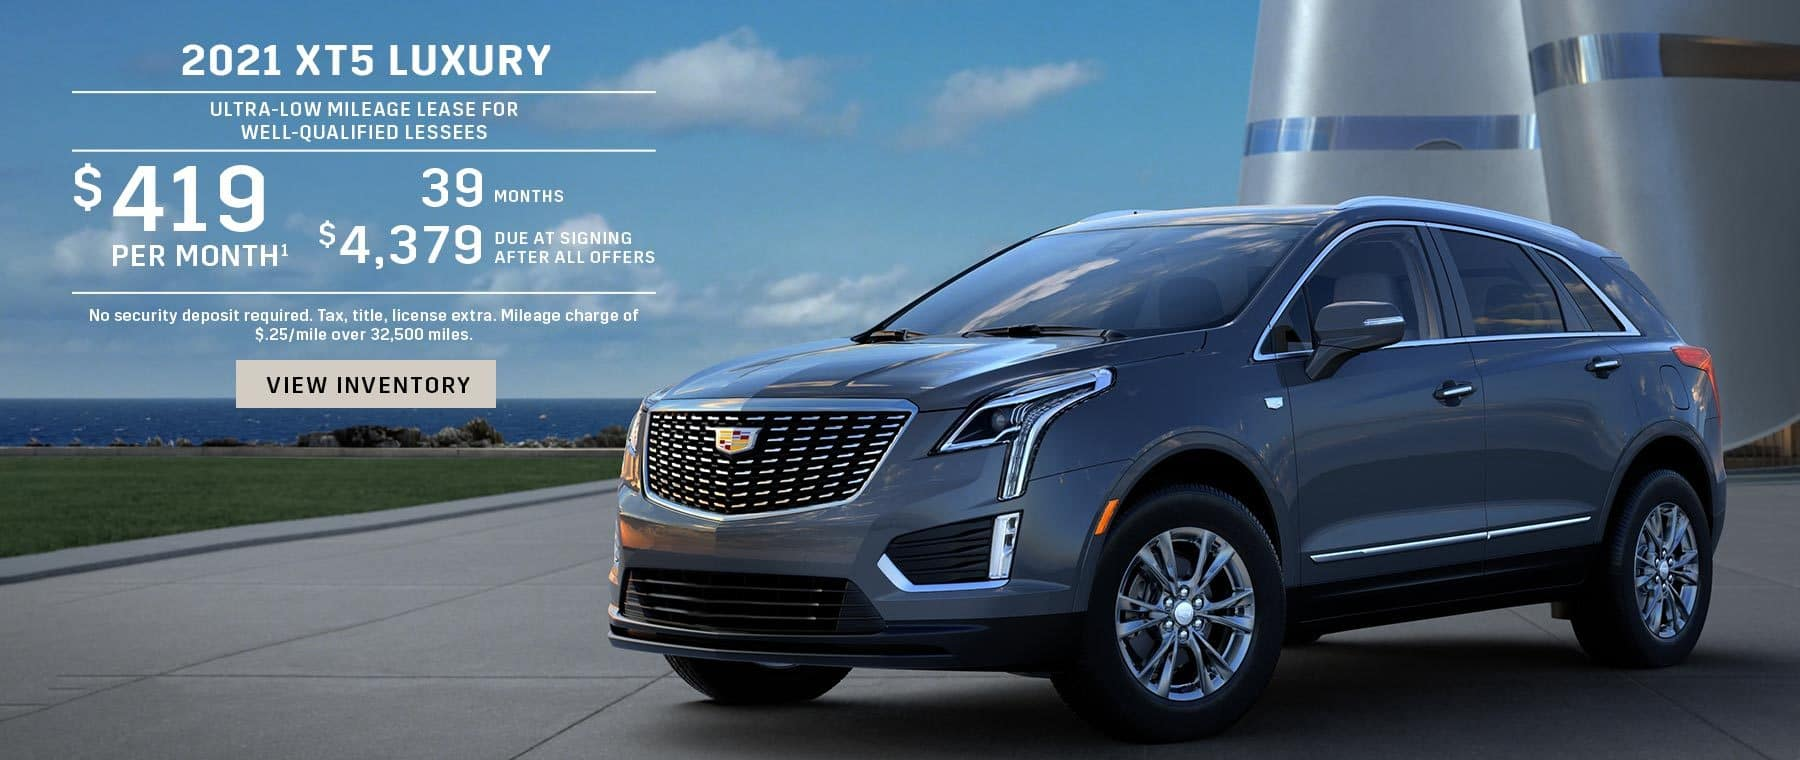 2021 XT5 Luxury. Ultra-low mileage lease for well-qualified lessees. $419 per month 39 months $4,379 due at signing after all offers. No security deposit required. Tax, title, license extra. Mileage charge of $.25/mile over 32,500 miles.